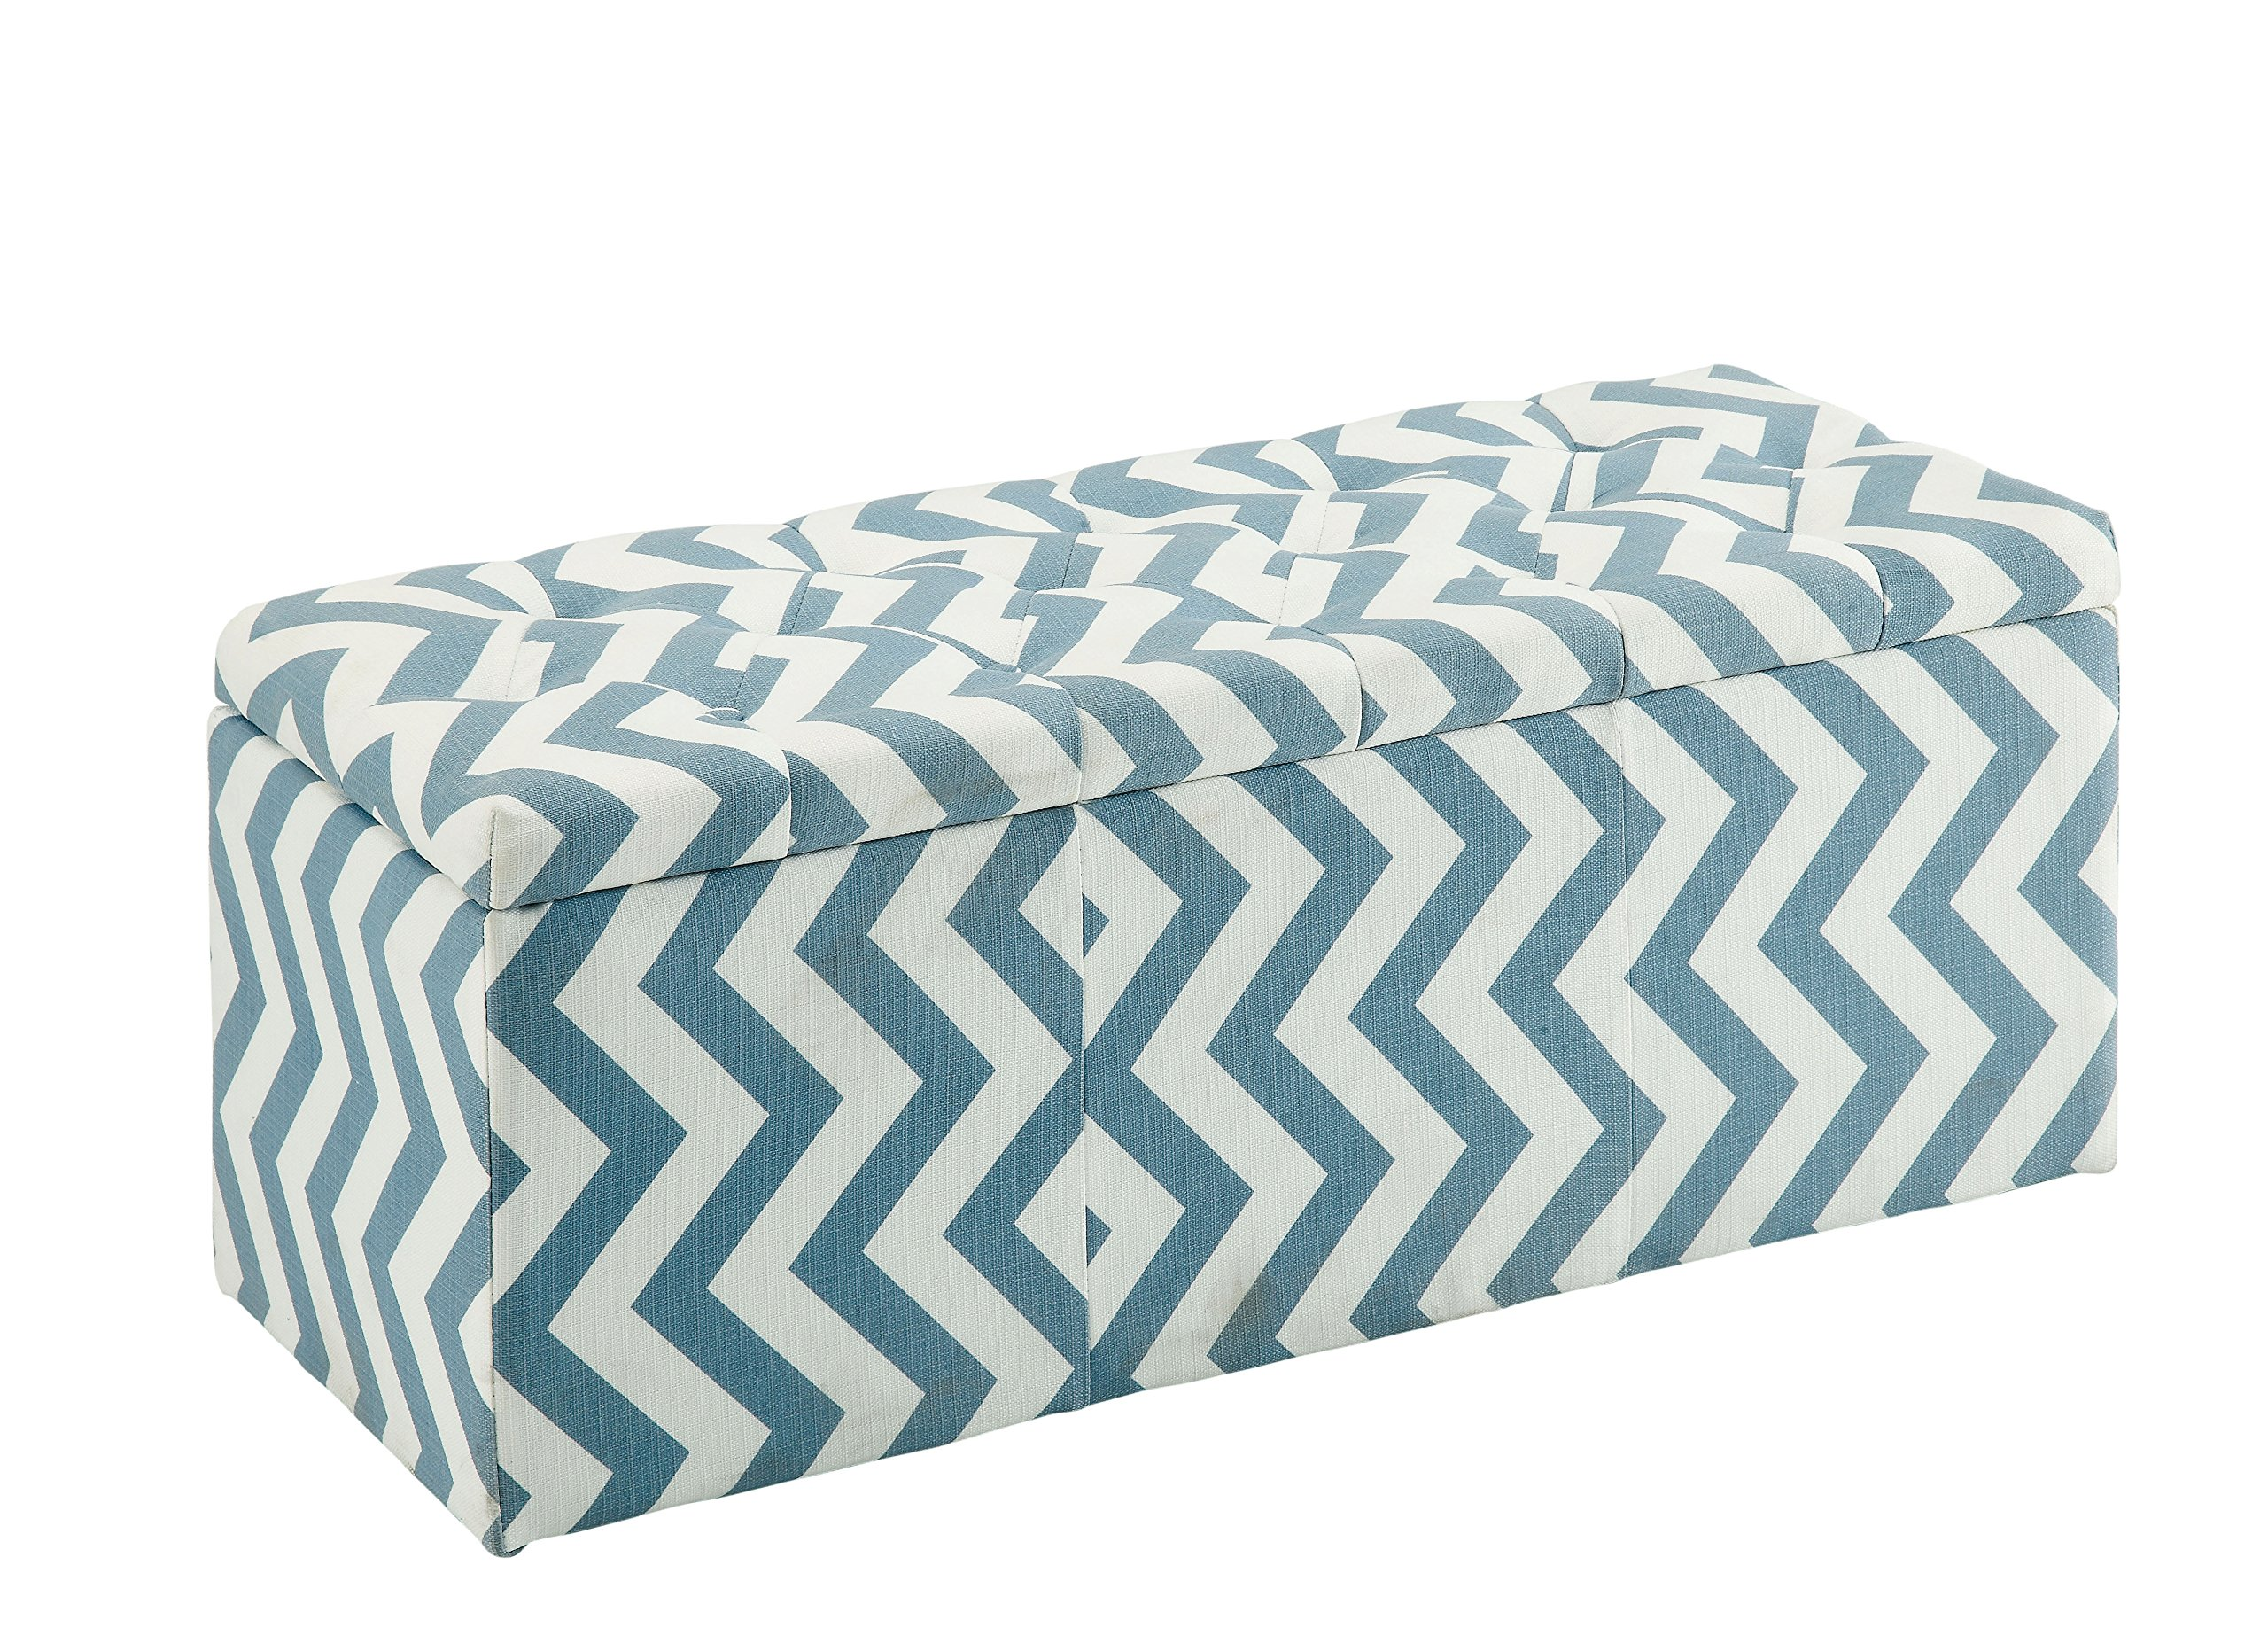 HOMES: Inside + Out IDF-BN6031BL Willy Chevron Storage Ottoman, Blue